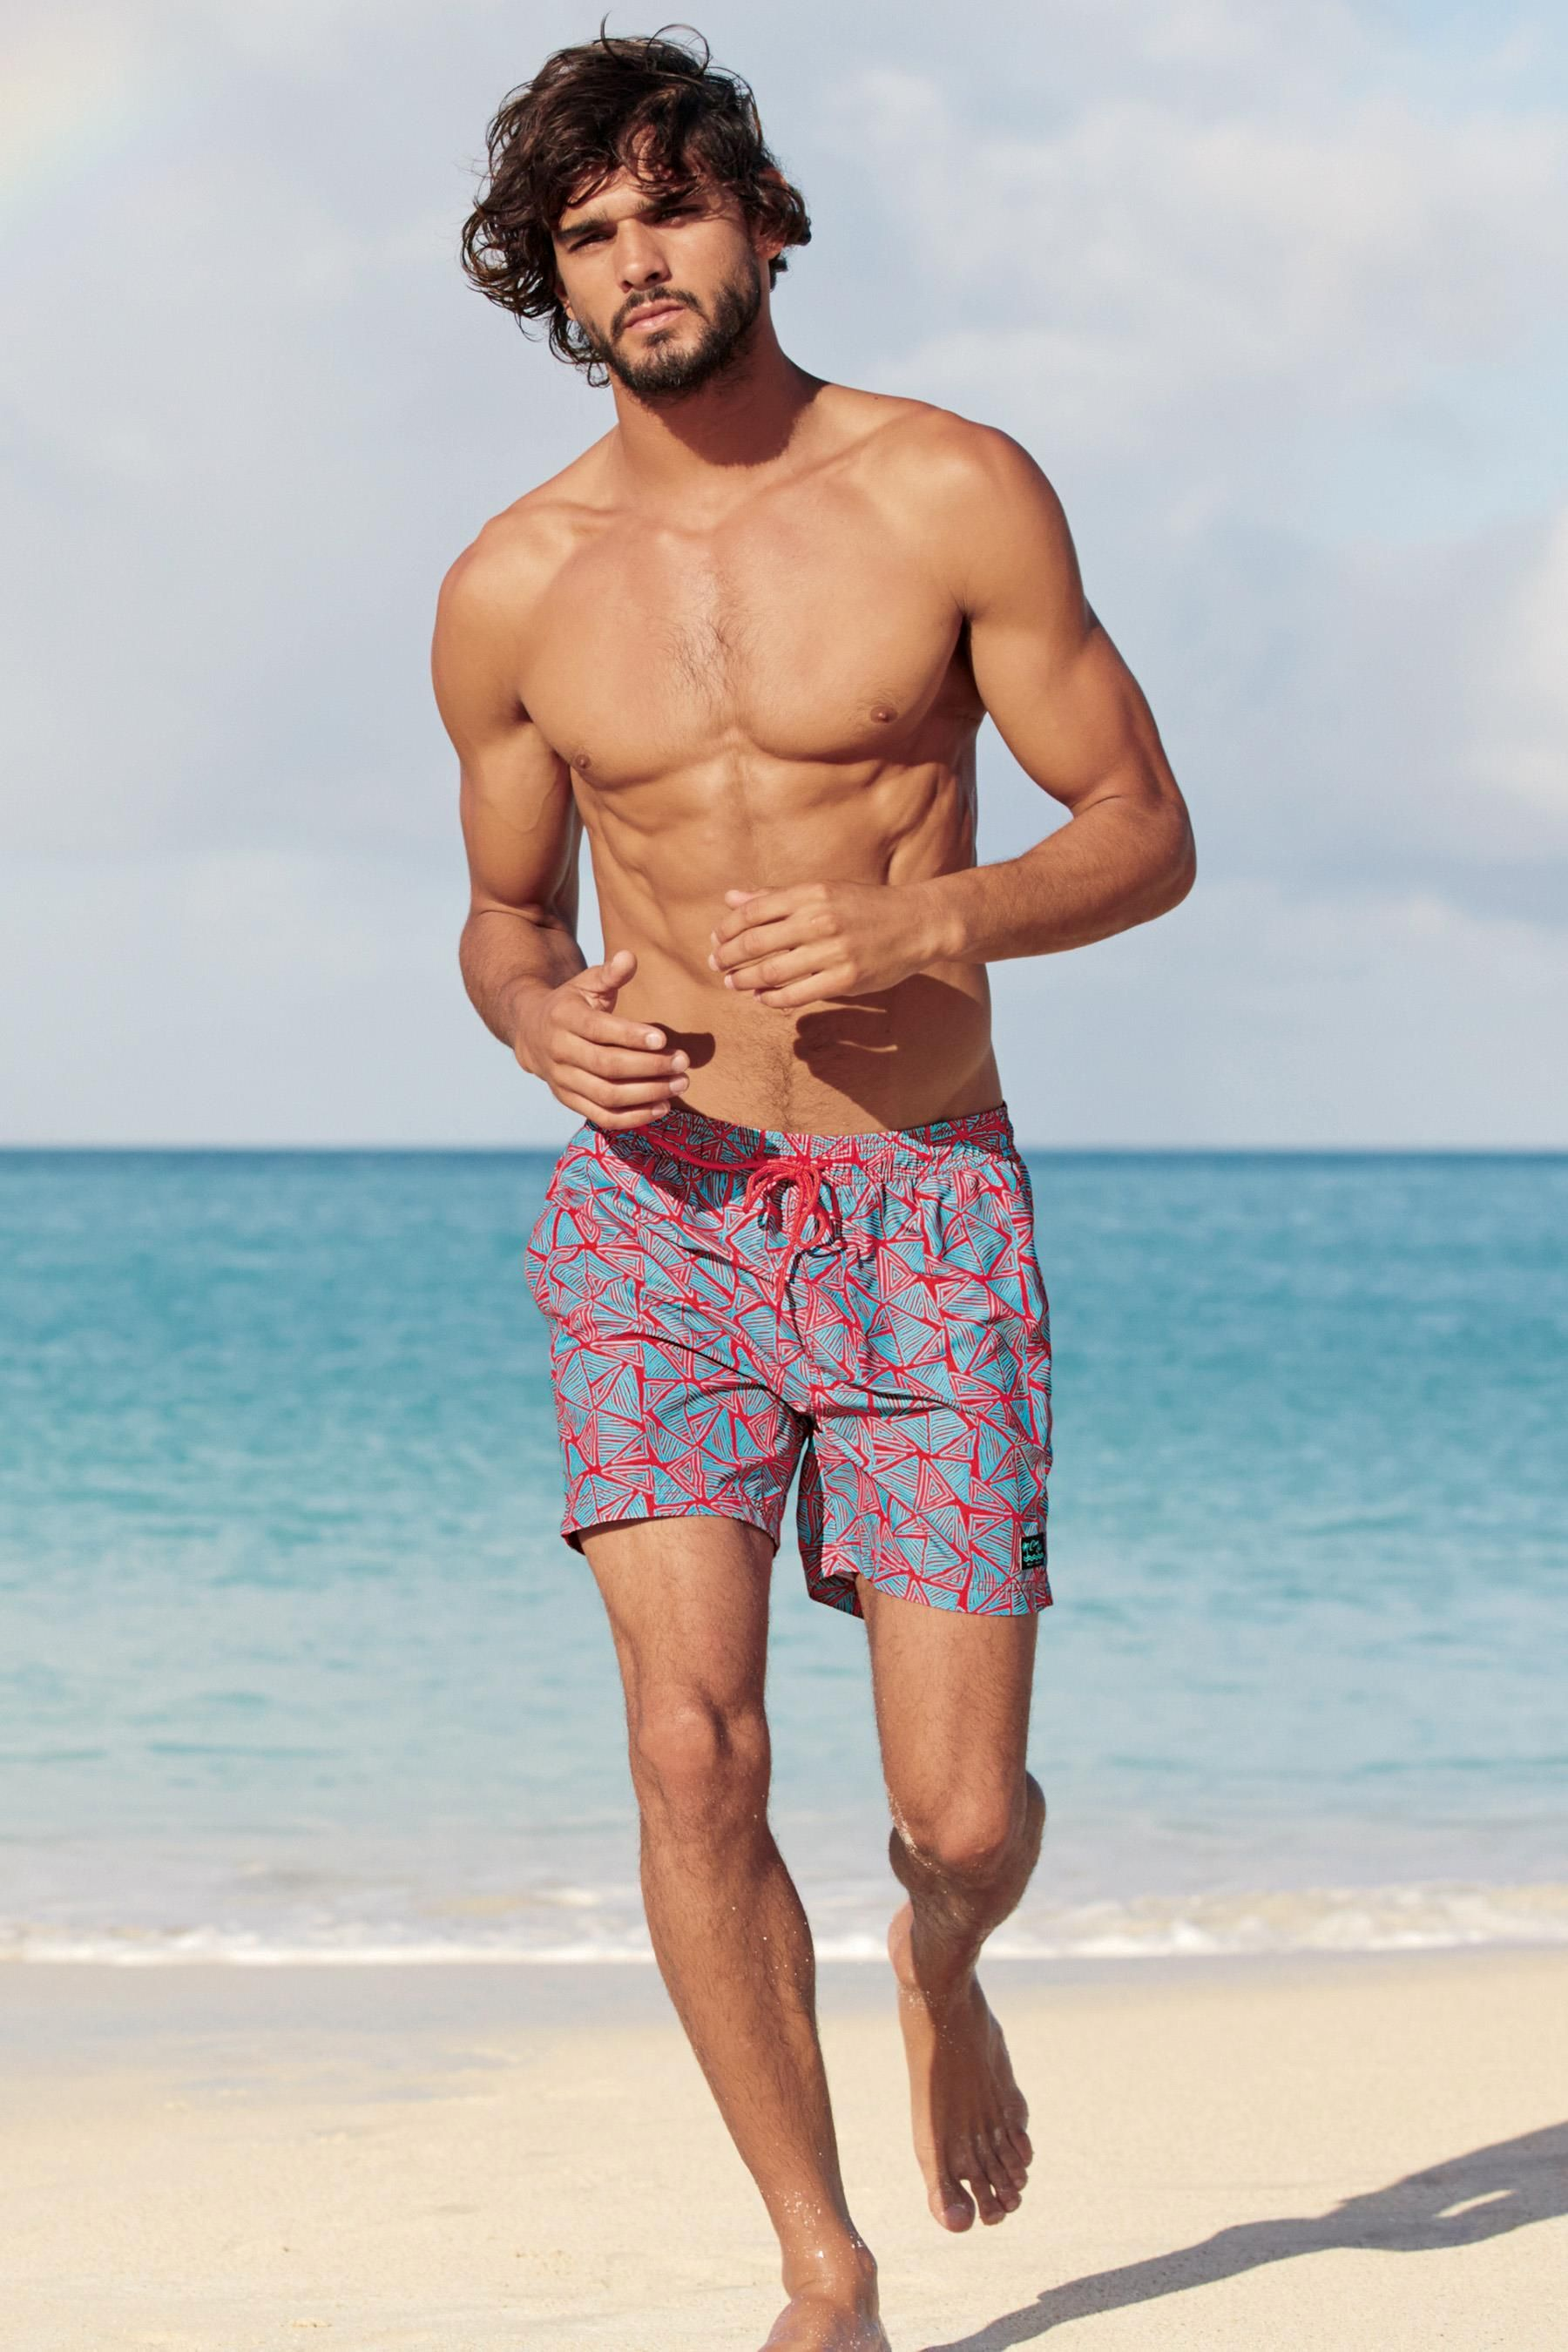 37849a7bfd88 Marlon Teixeira is back in the spotlight as he hits the beach for Next. The  Brazilian model showcases casual summer styles as he soaks in the sun.